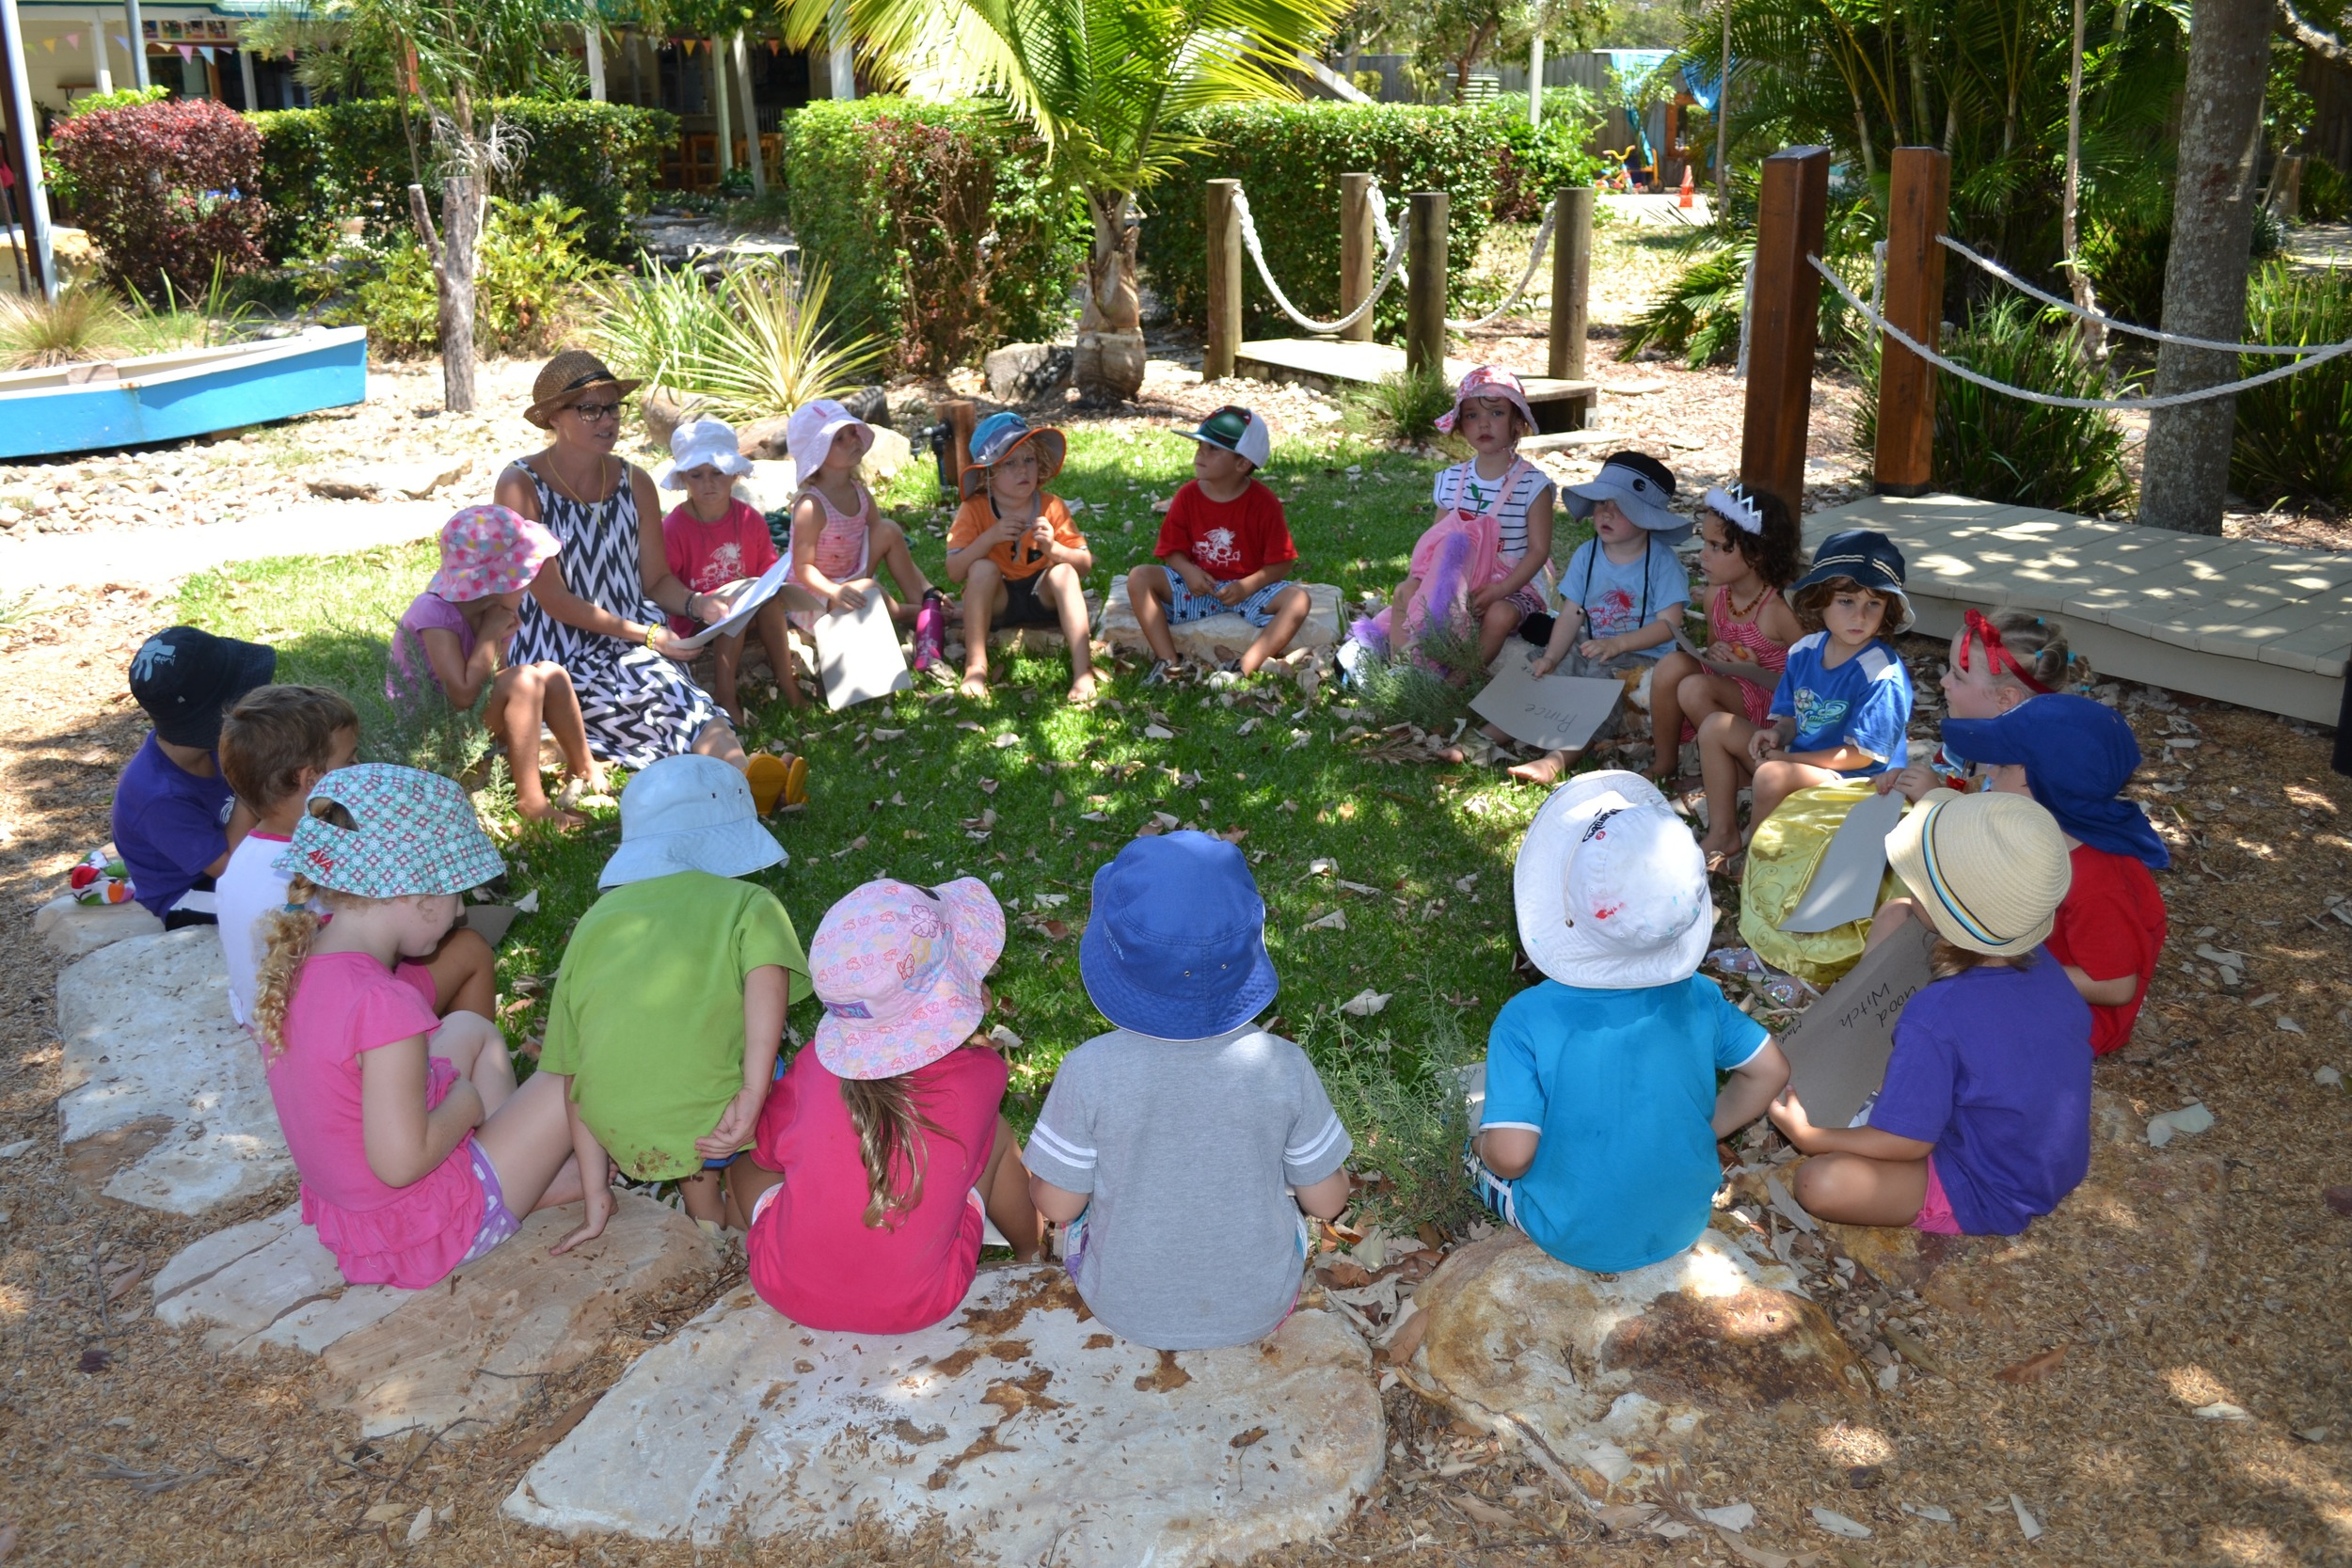 Meeting circle becomes an outdoor classroom